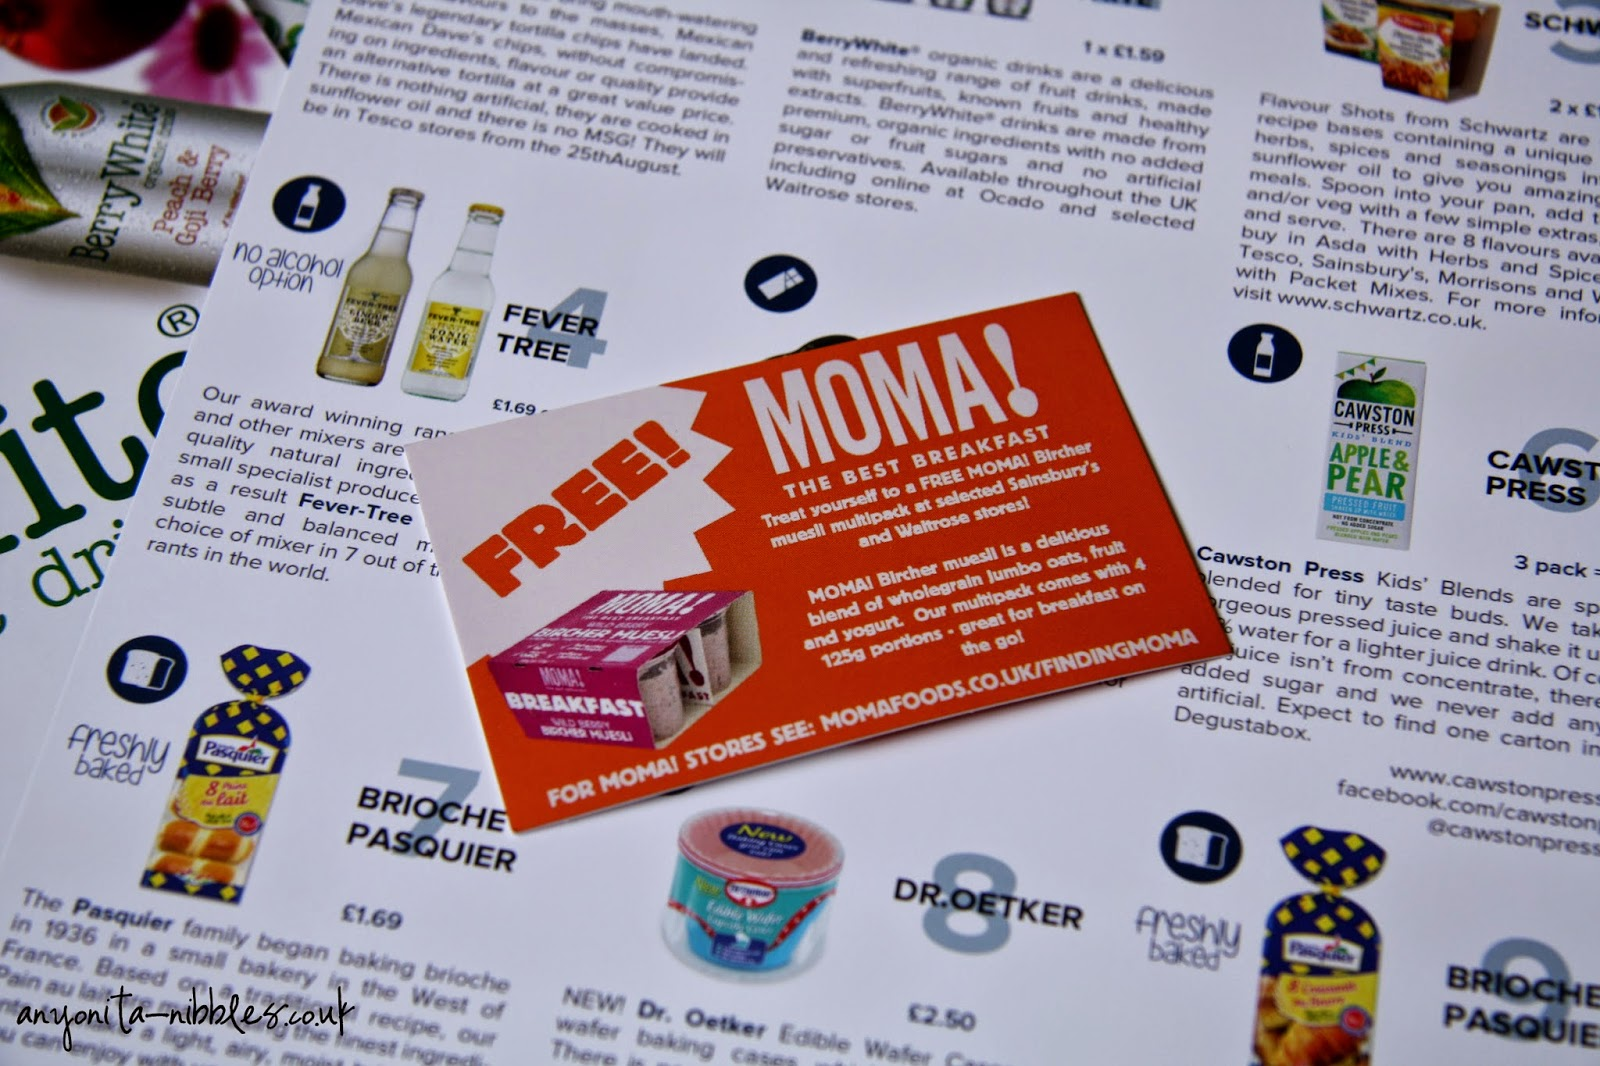 Degustabox also sends refrigerated goodies in the form of vouchers | anyonita-nibbles.co.uk